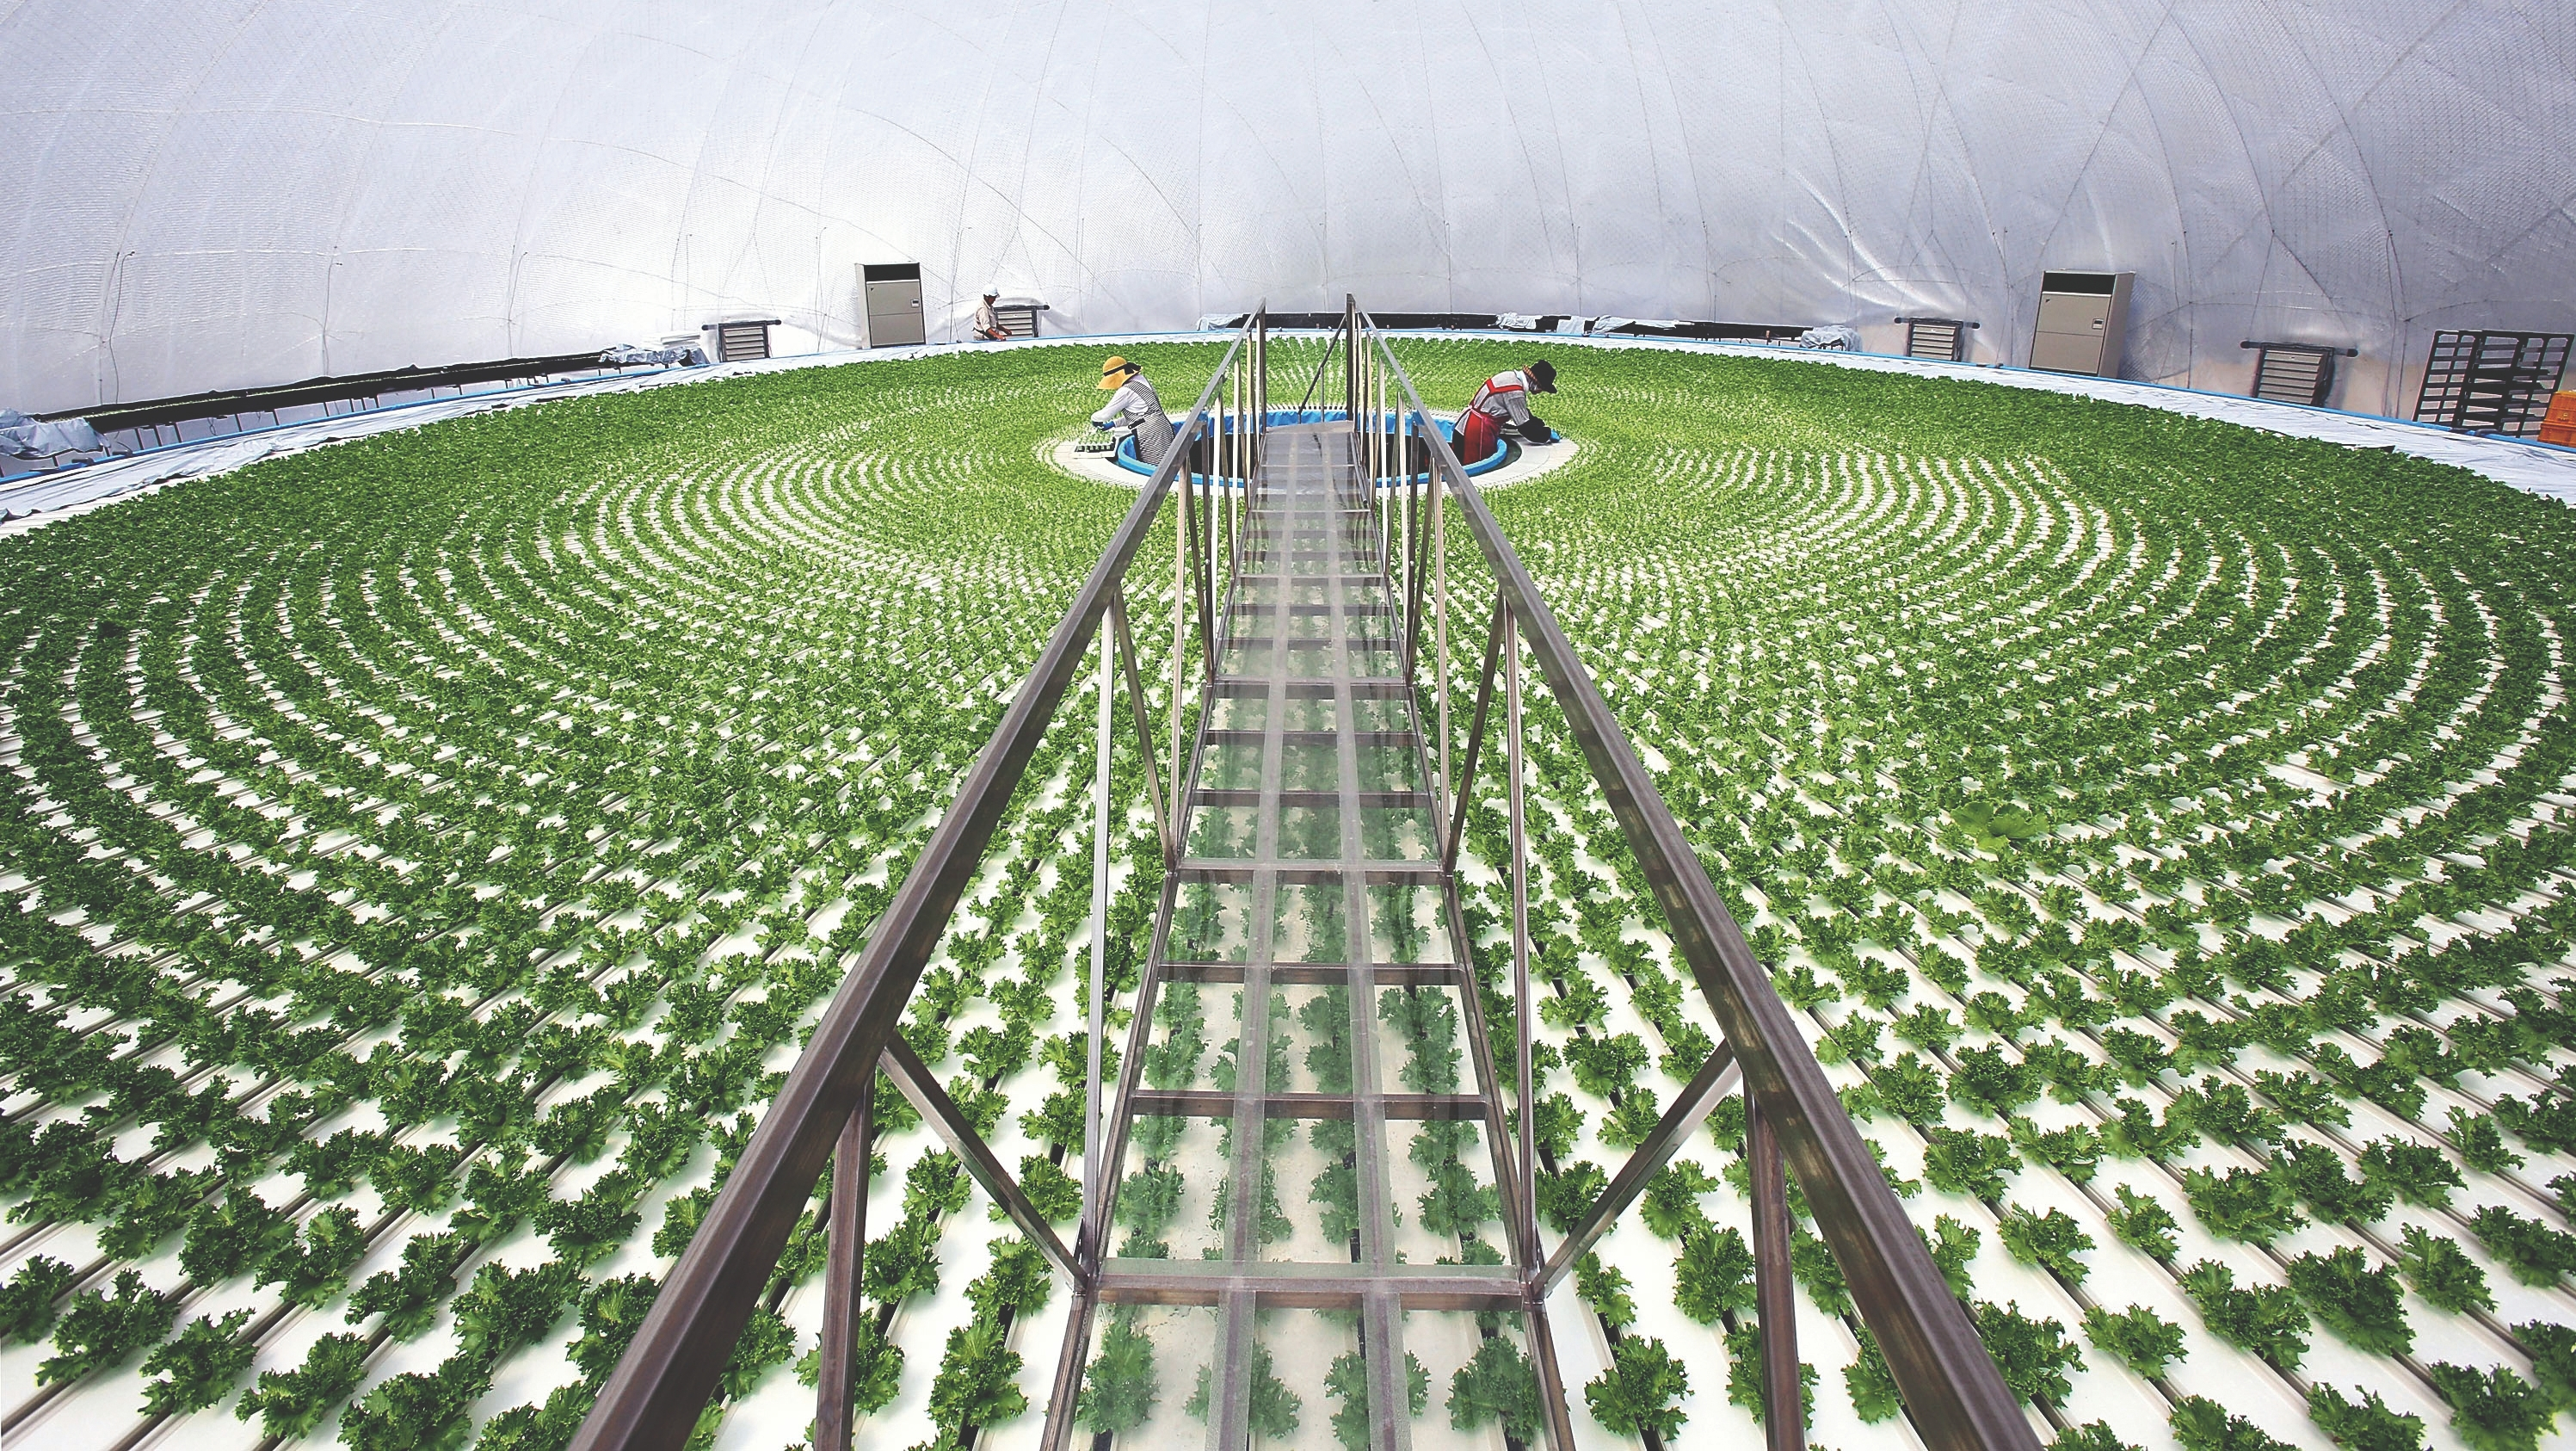 Deconstructed: urban farming